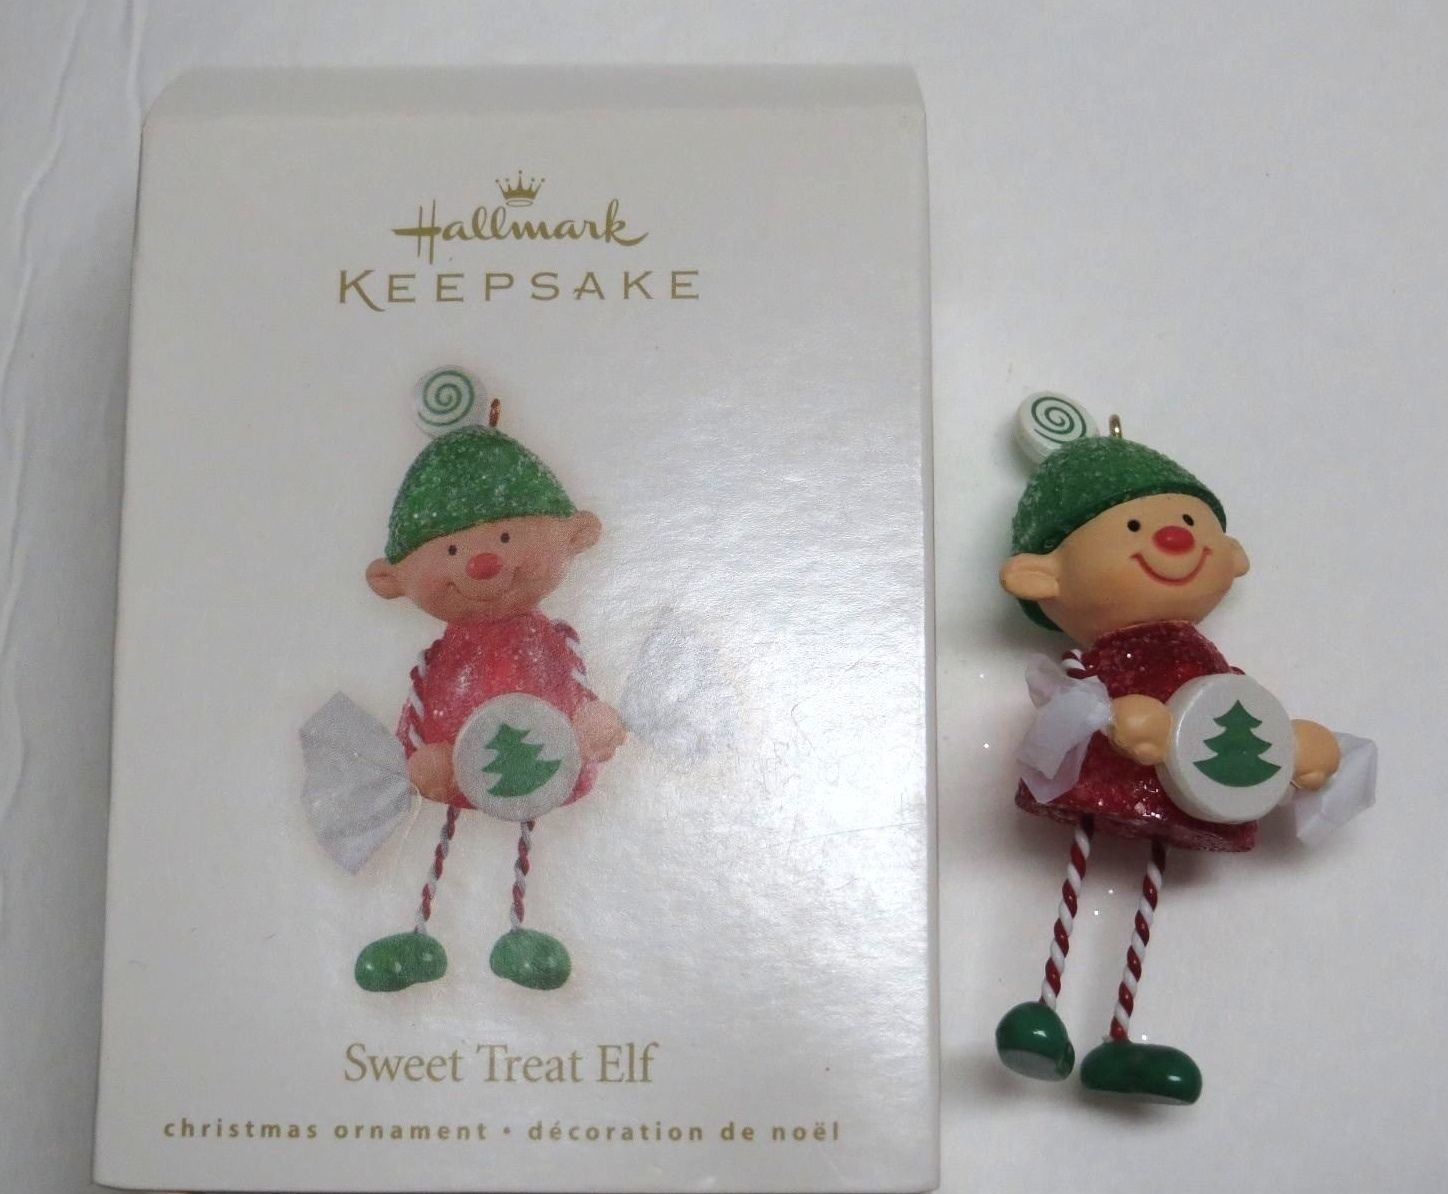 Hallmark Keepsake Ornament 2008 SWEET TREAT ELF Candy Cane Gumdrop Tree